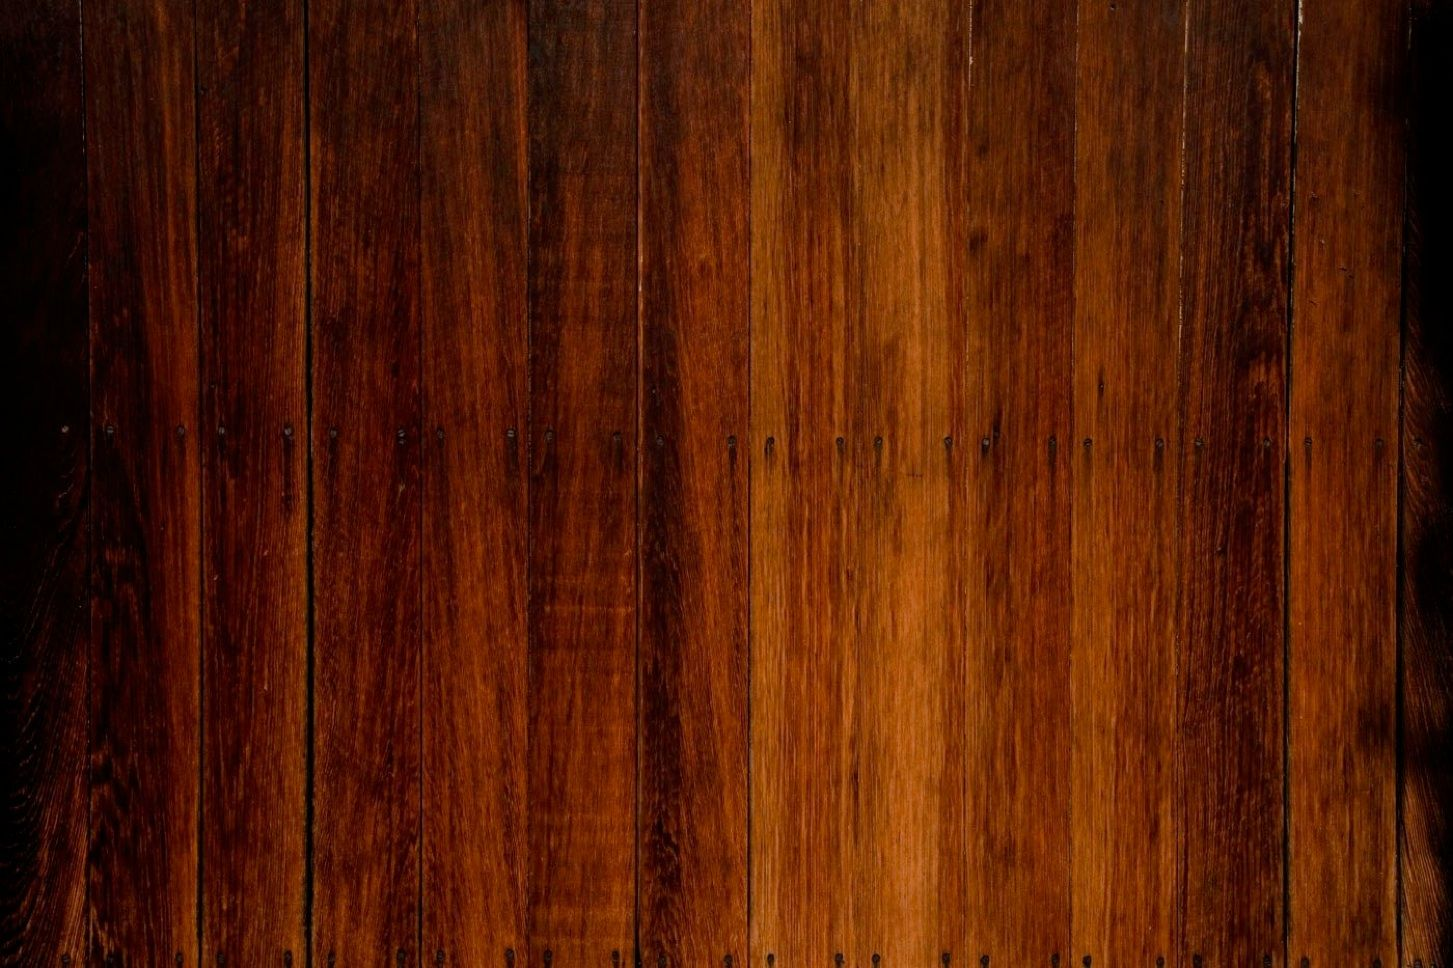 Dark Wood Wallpaper Elijah Wood Hd Mac Paneling Large